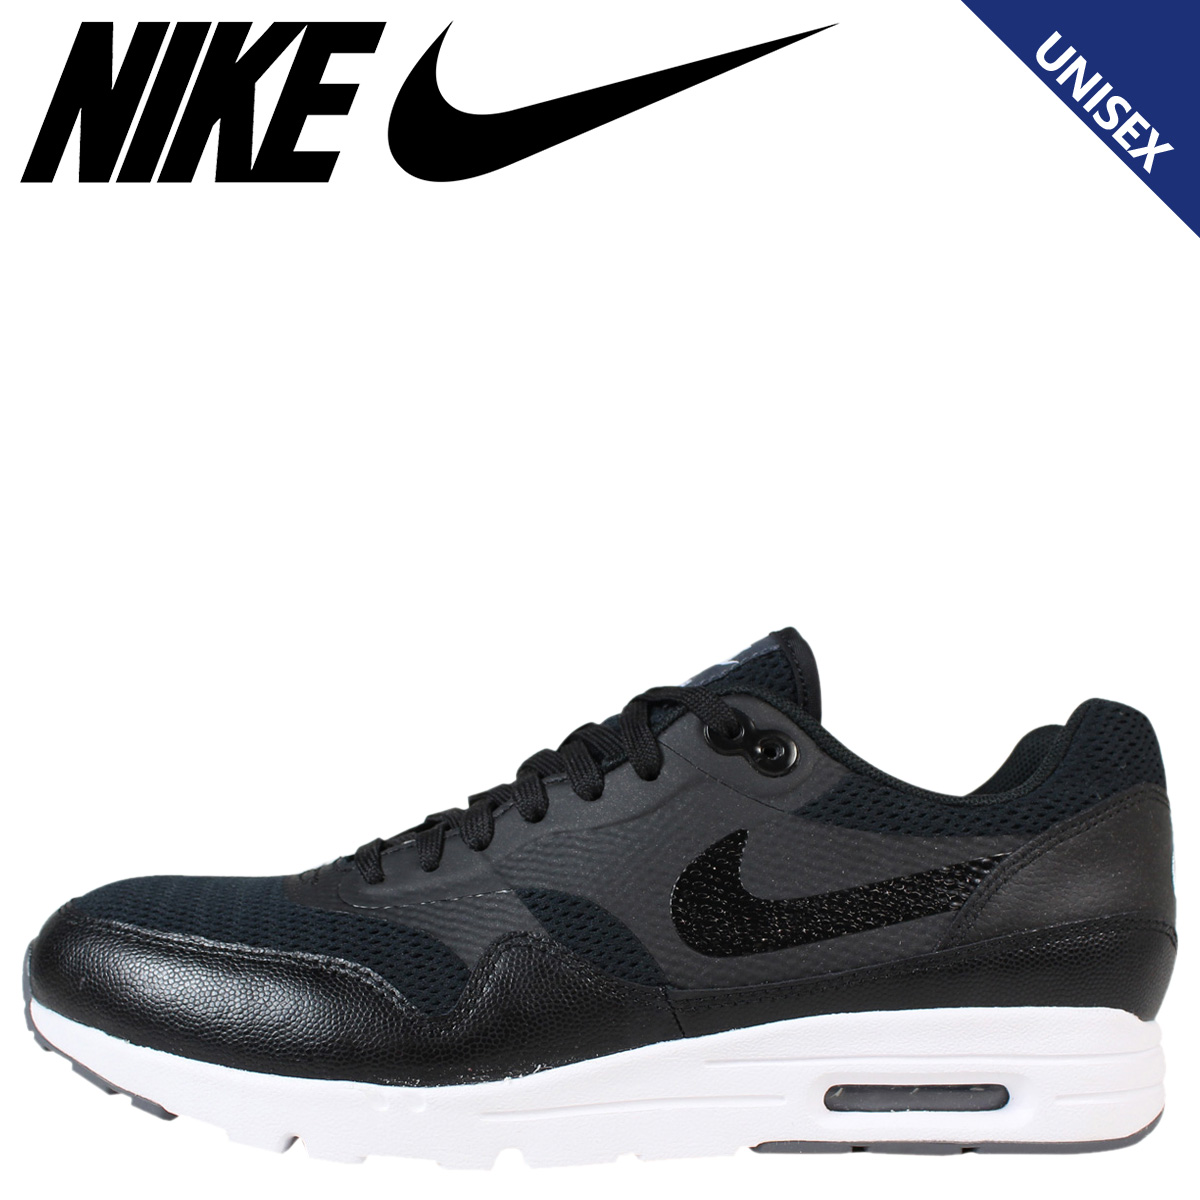 brand new f714a 727d3 NIKE Nike Air Max sneakers Womens WMNS AIR MAX 1 ULTRA ESSENTIALS Air Max 1  704993-009 men s shoes black